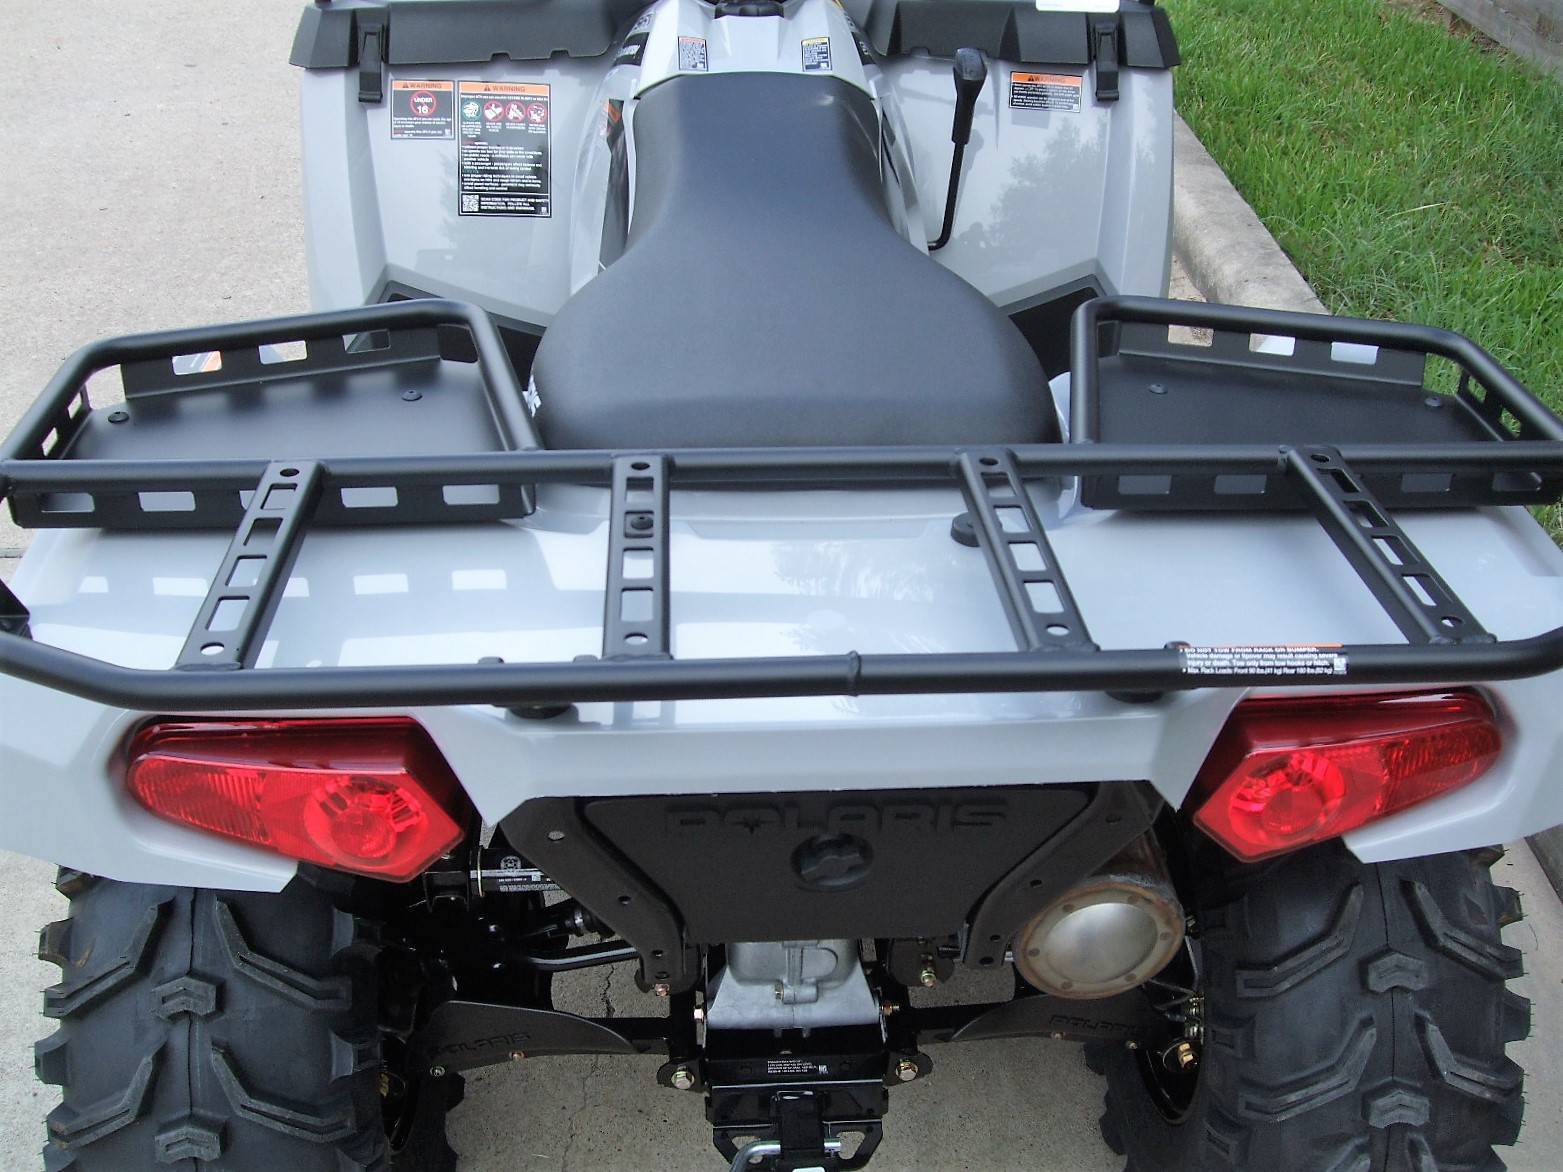 2019 Polaris Sportsman 570 EPS Utility Edition in Katy, Texas - Photo 8